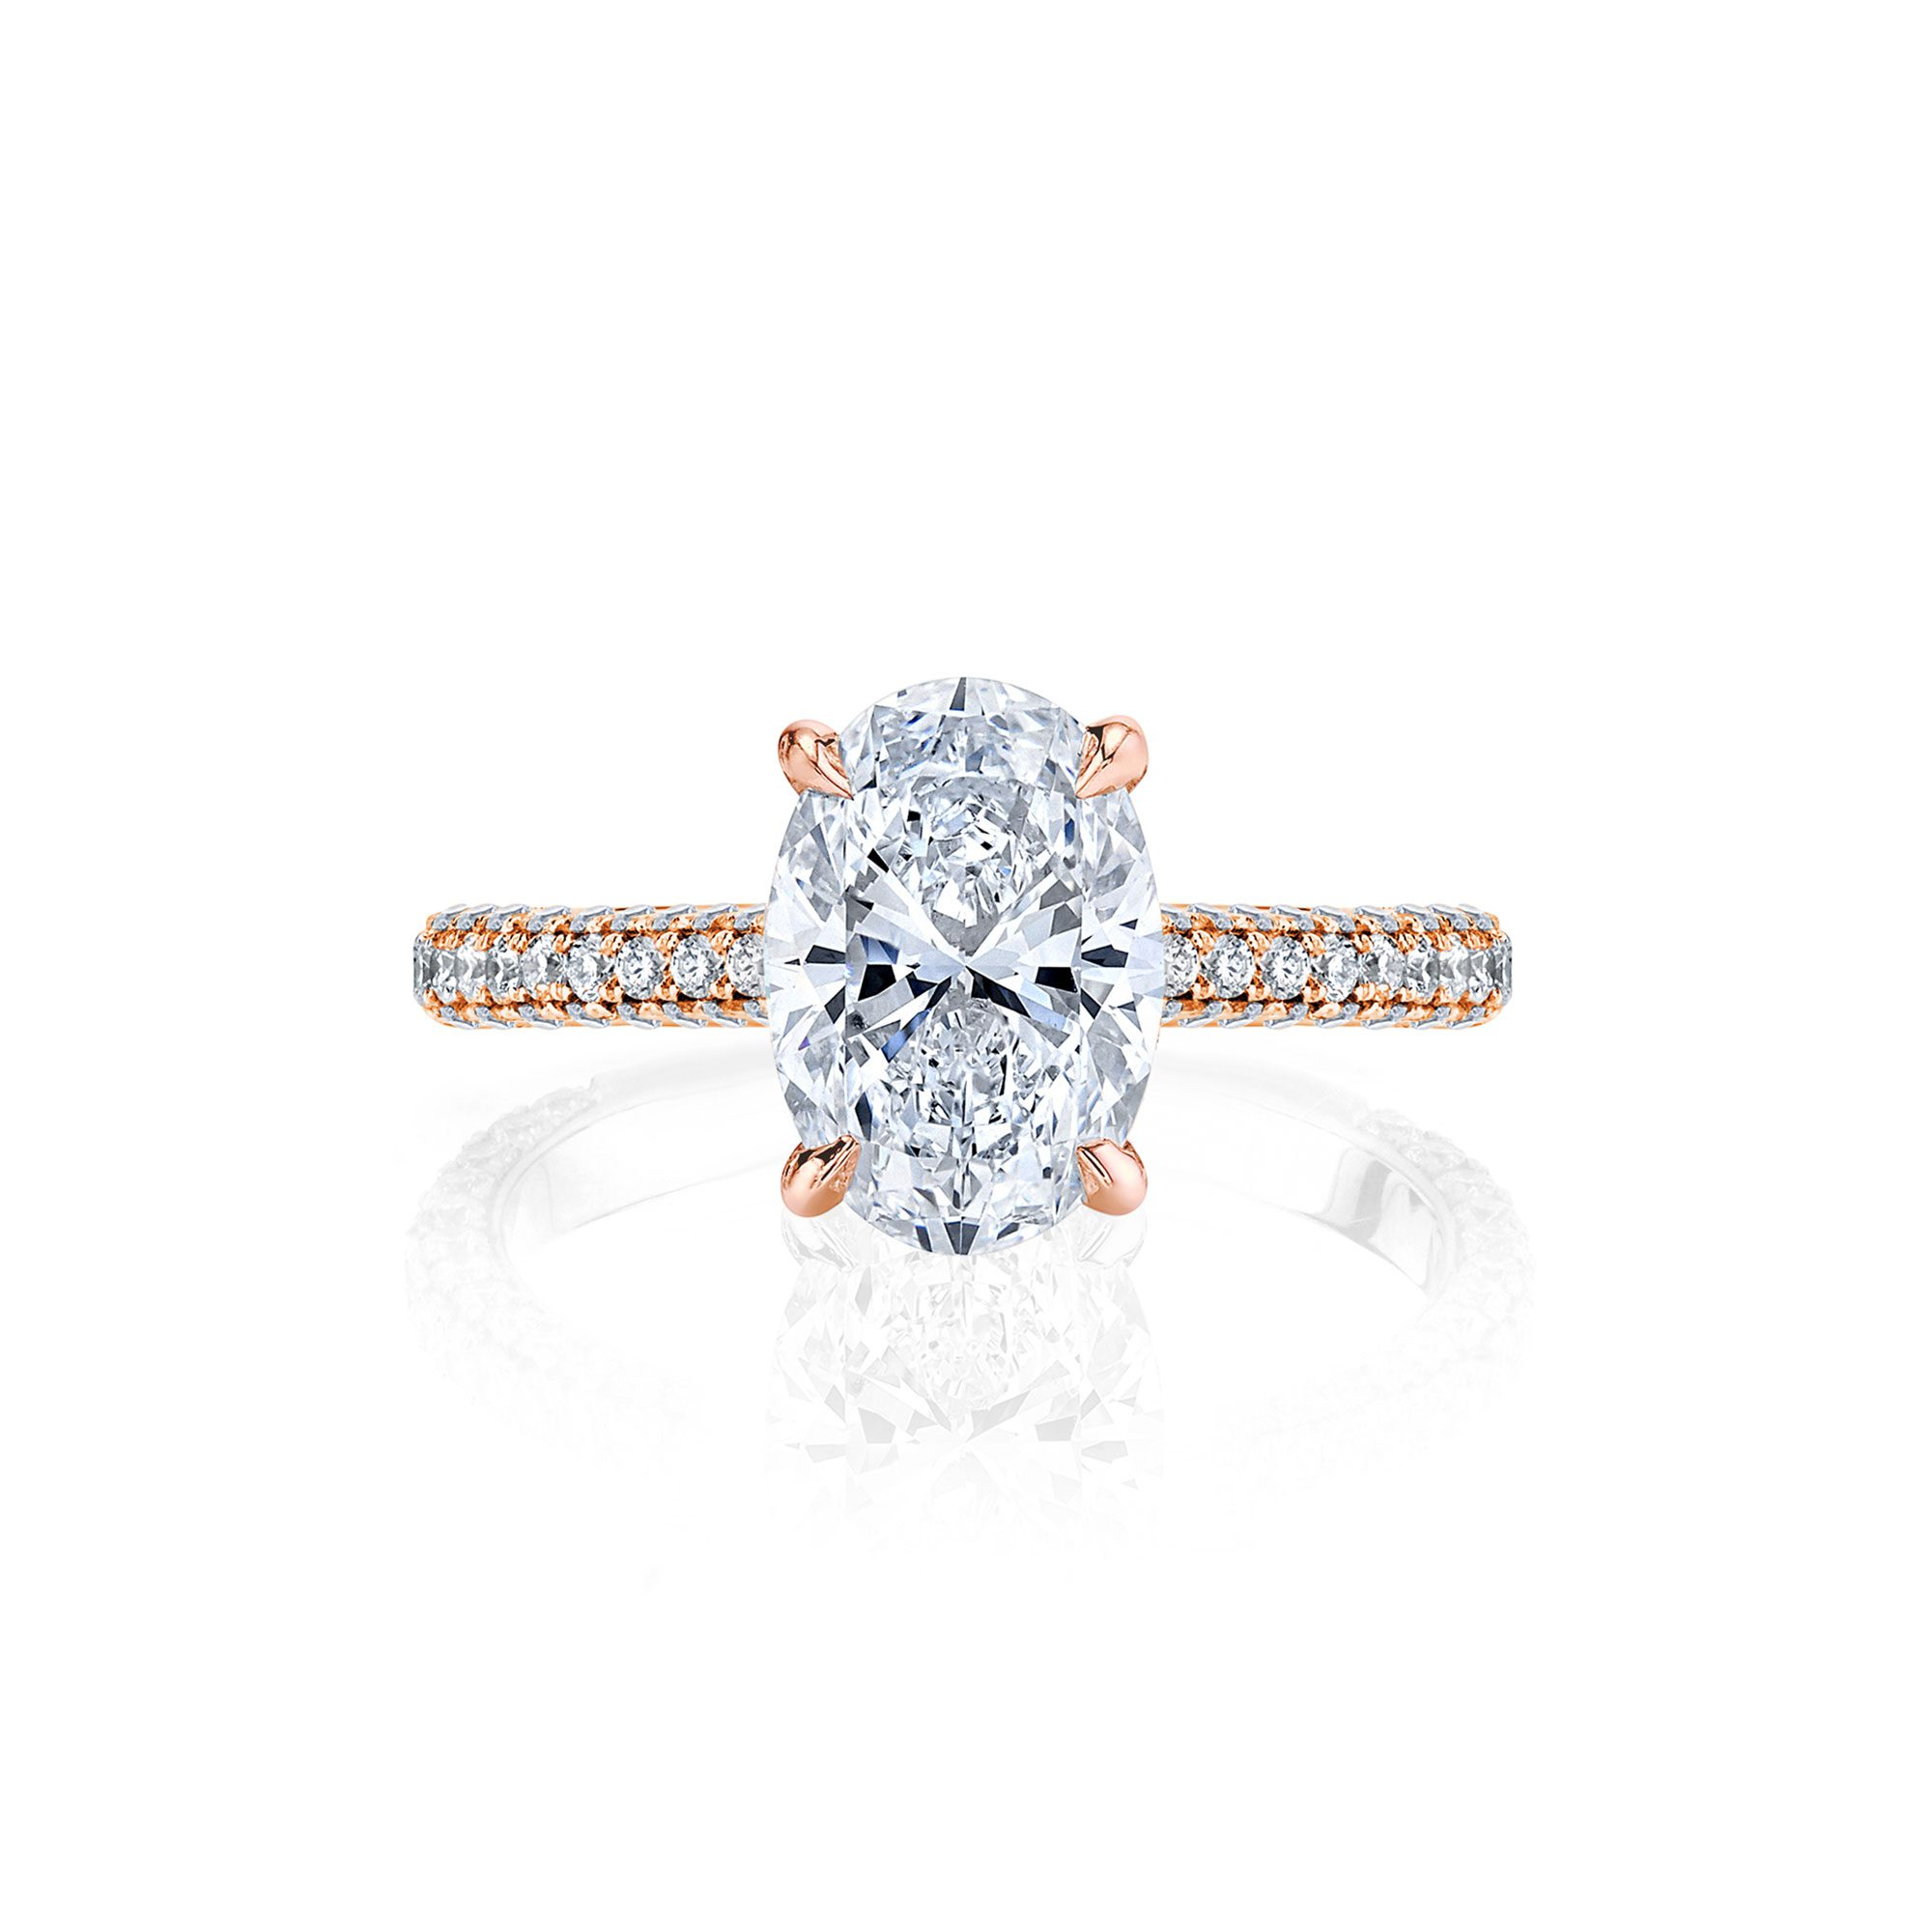 Jacqueline Solitaire Oval Cut Lab Diamond Engagement Ring with three row pavé 18k rose gold band